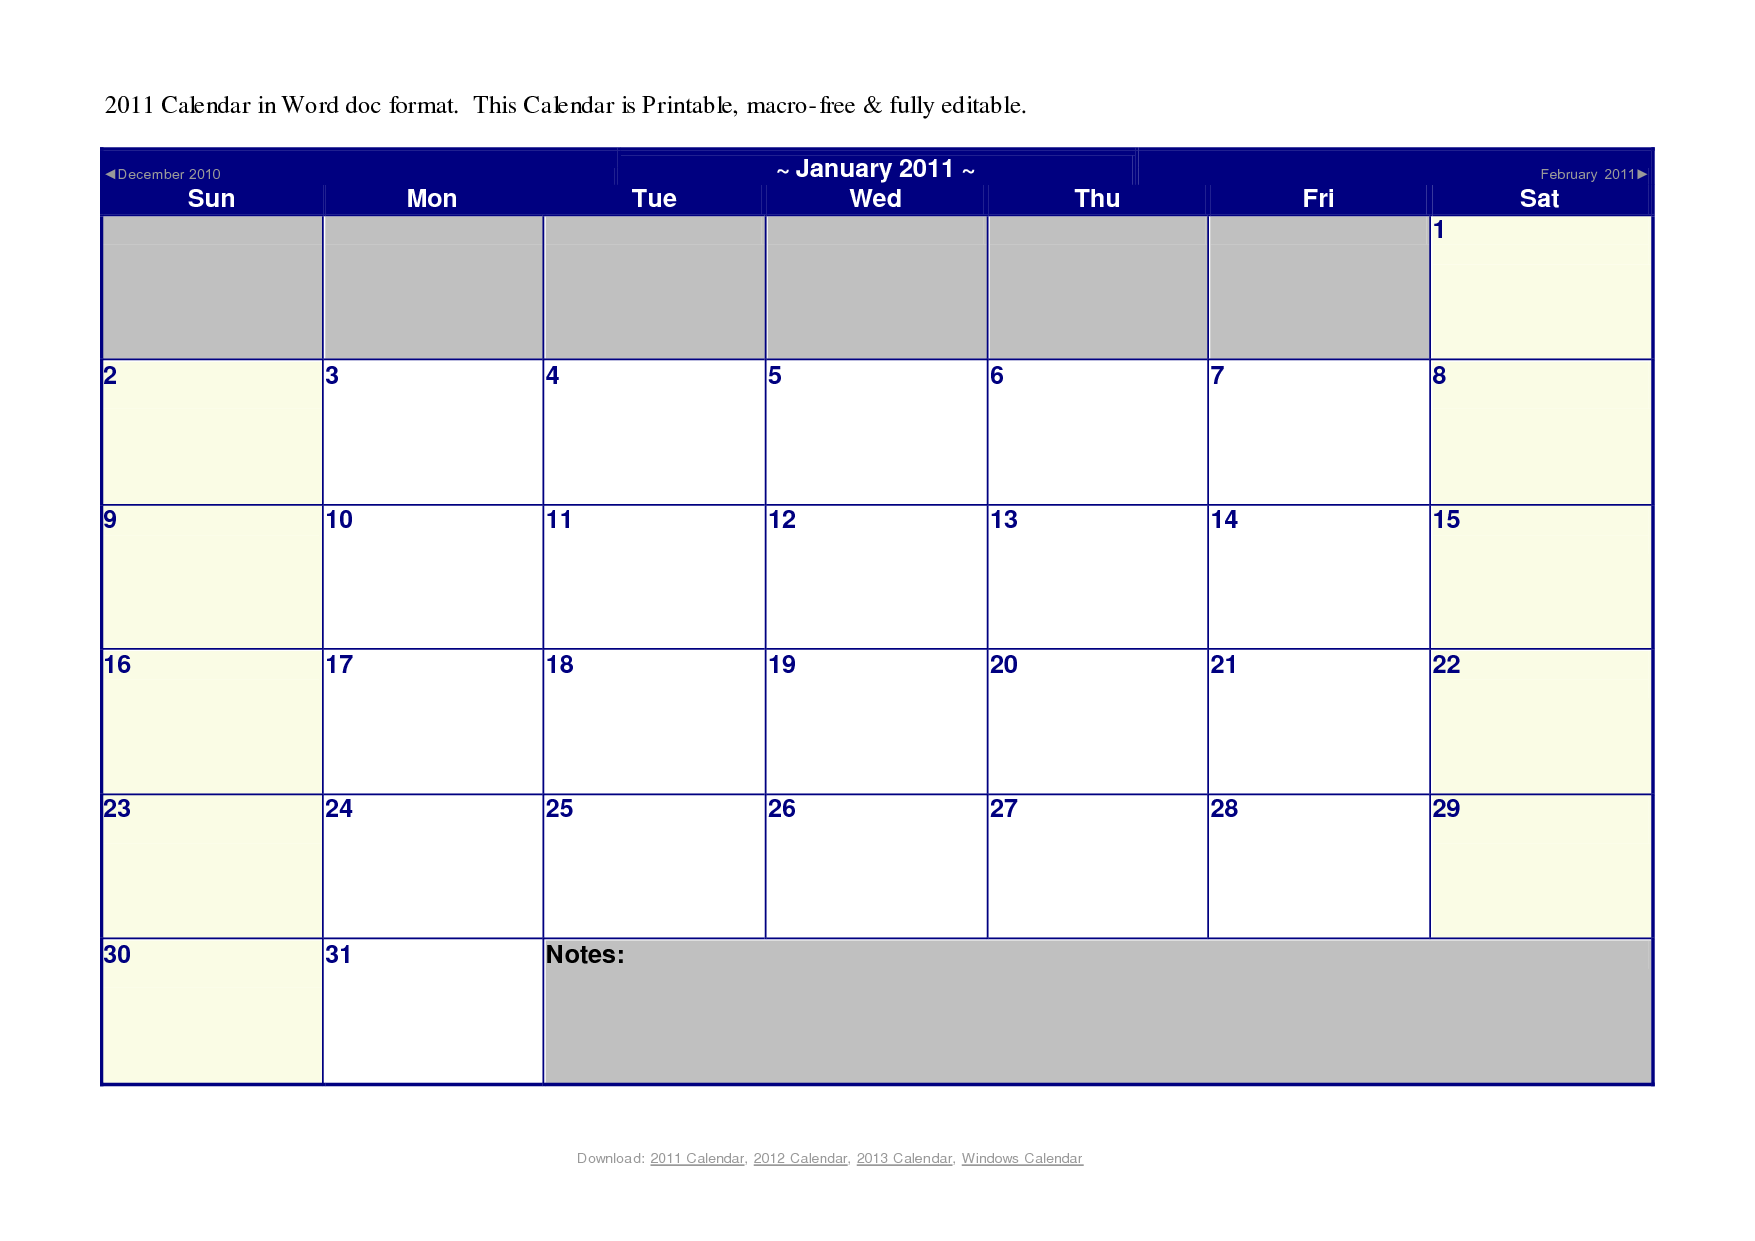 20 Microsoft Blank Calendar Template Images